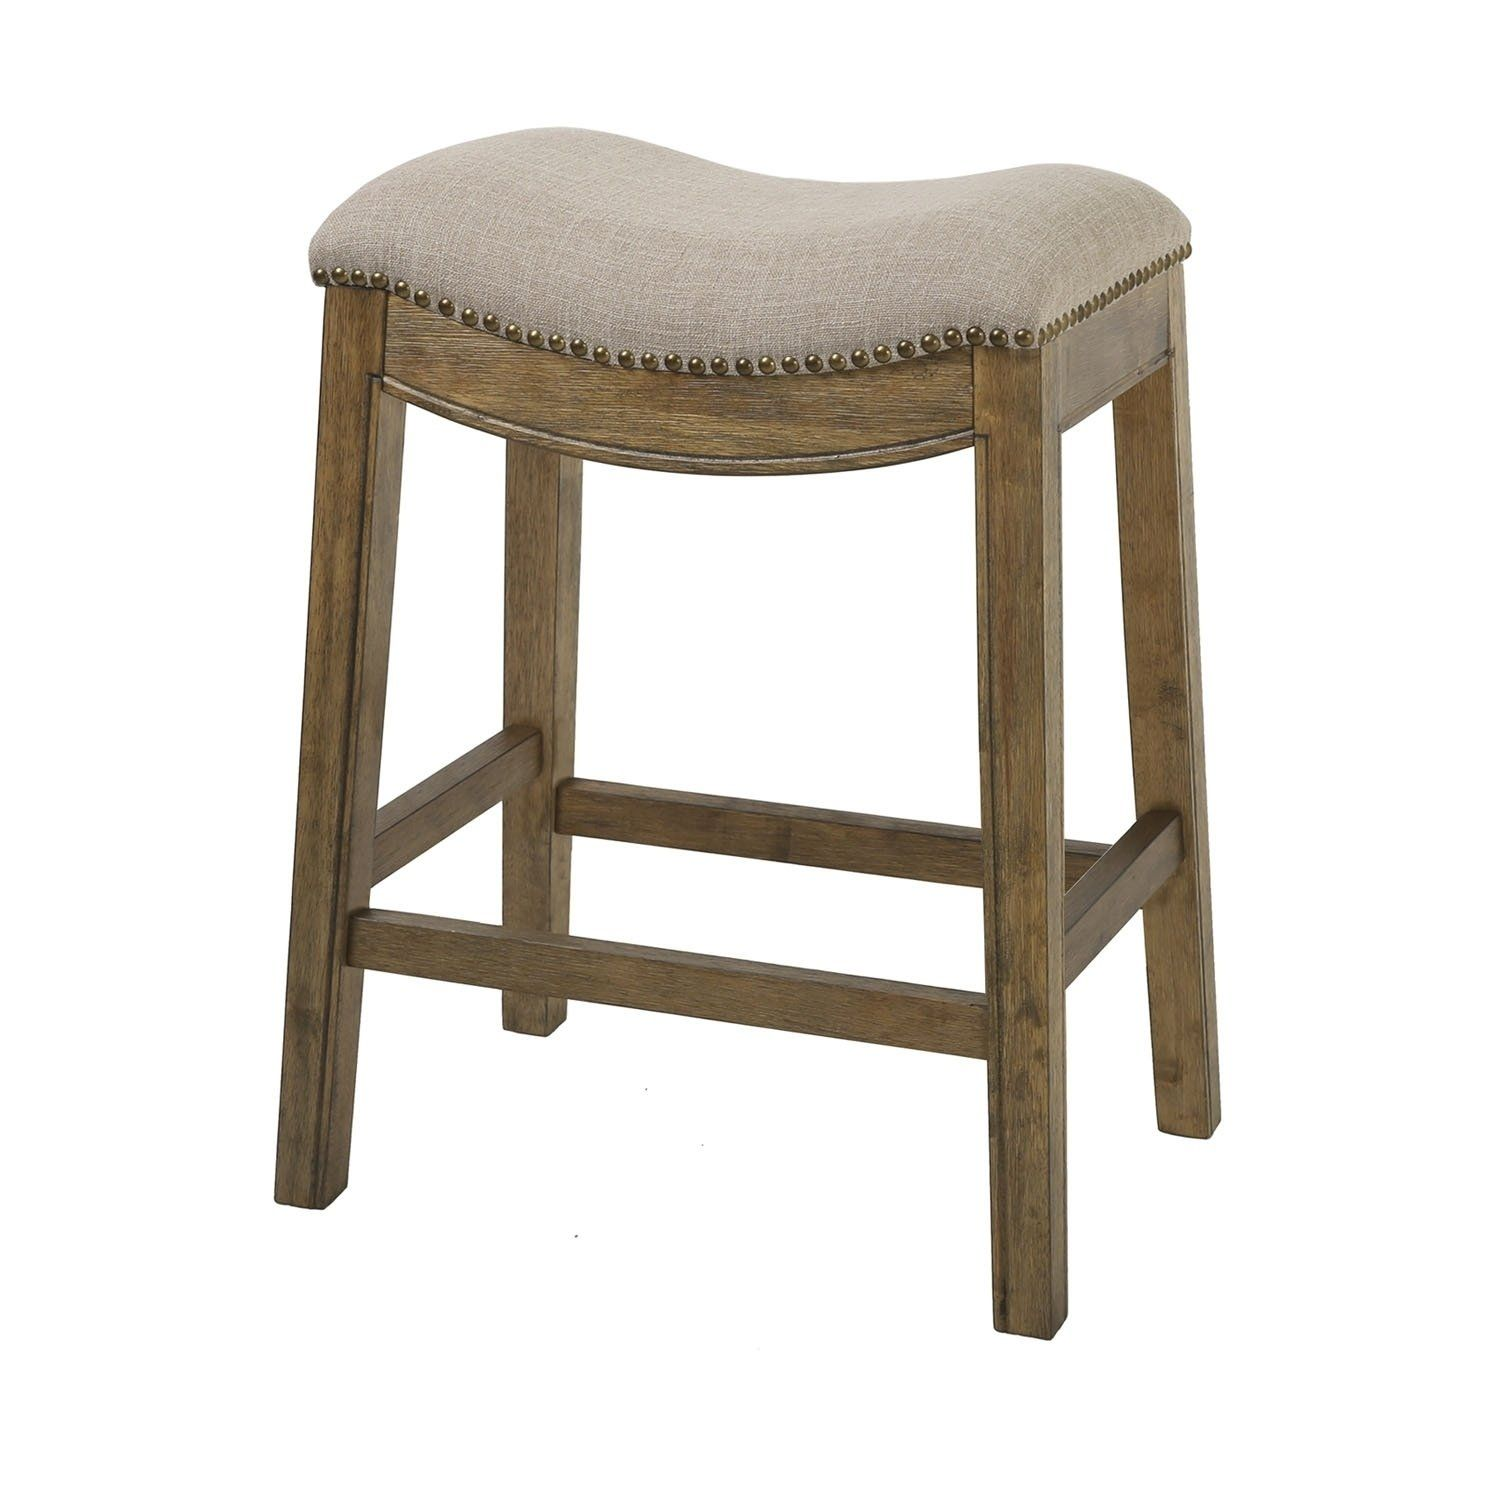 Newridge Home Saddle Style 25 Counter Height Stool N A The Gray Barn Counter Stools Counter Height Stools Stool